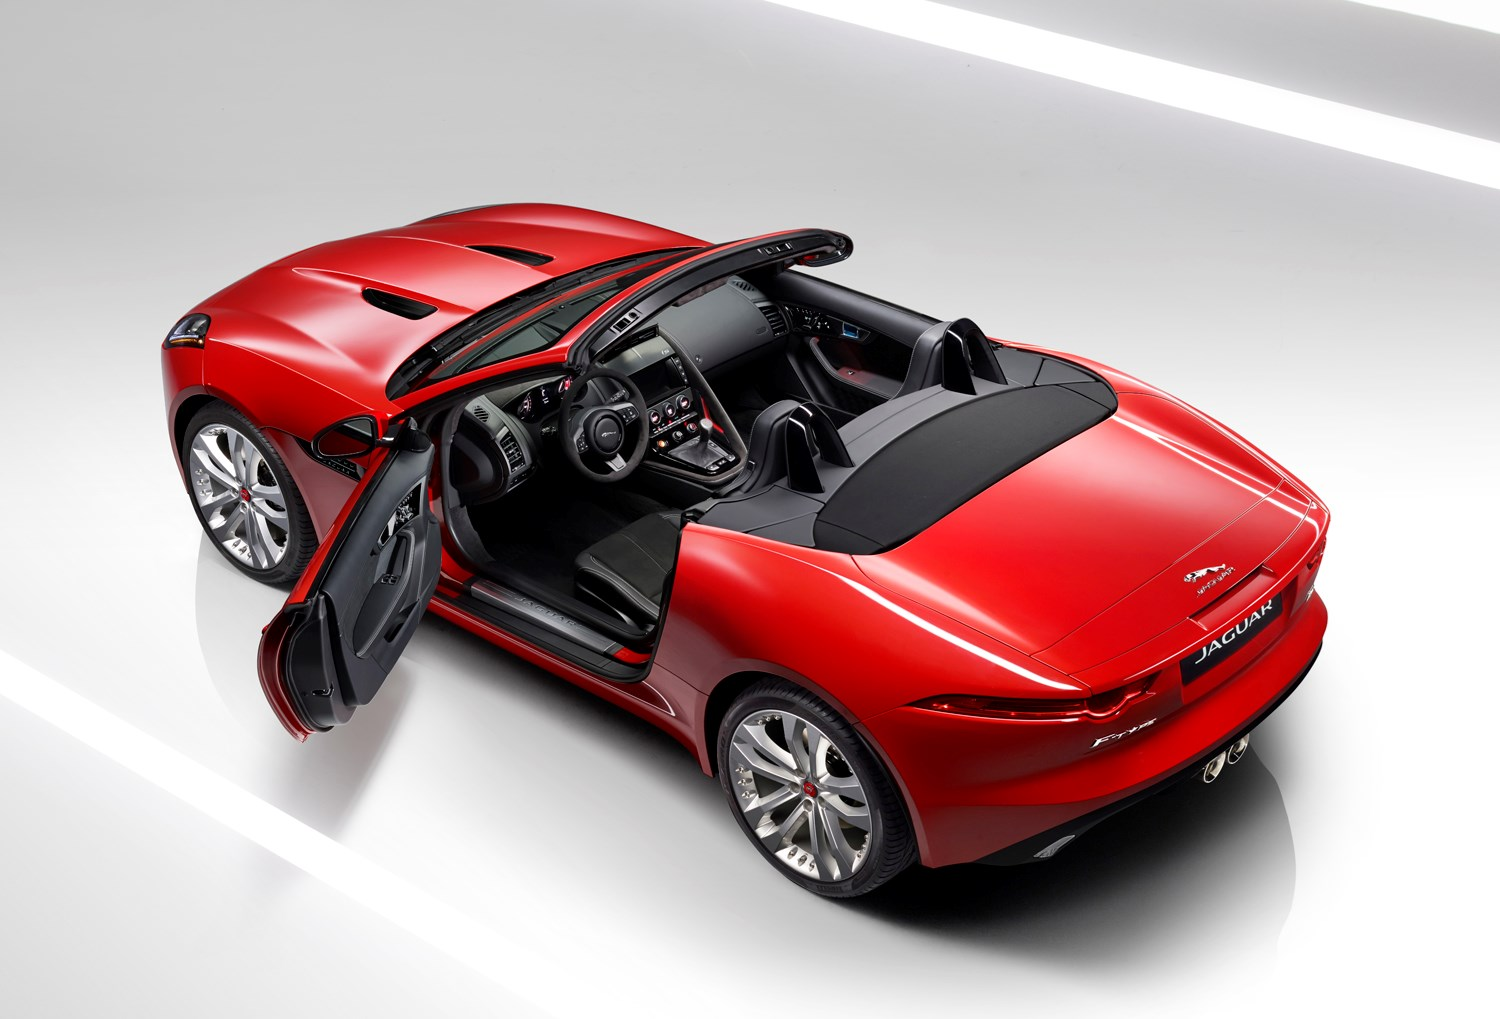 jaguar f type roadster 2013 features equipment and accessories parkers. Black Bedroom Furniture Sets. Home Design Ideas